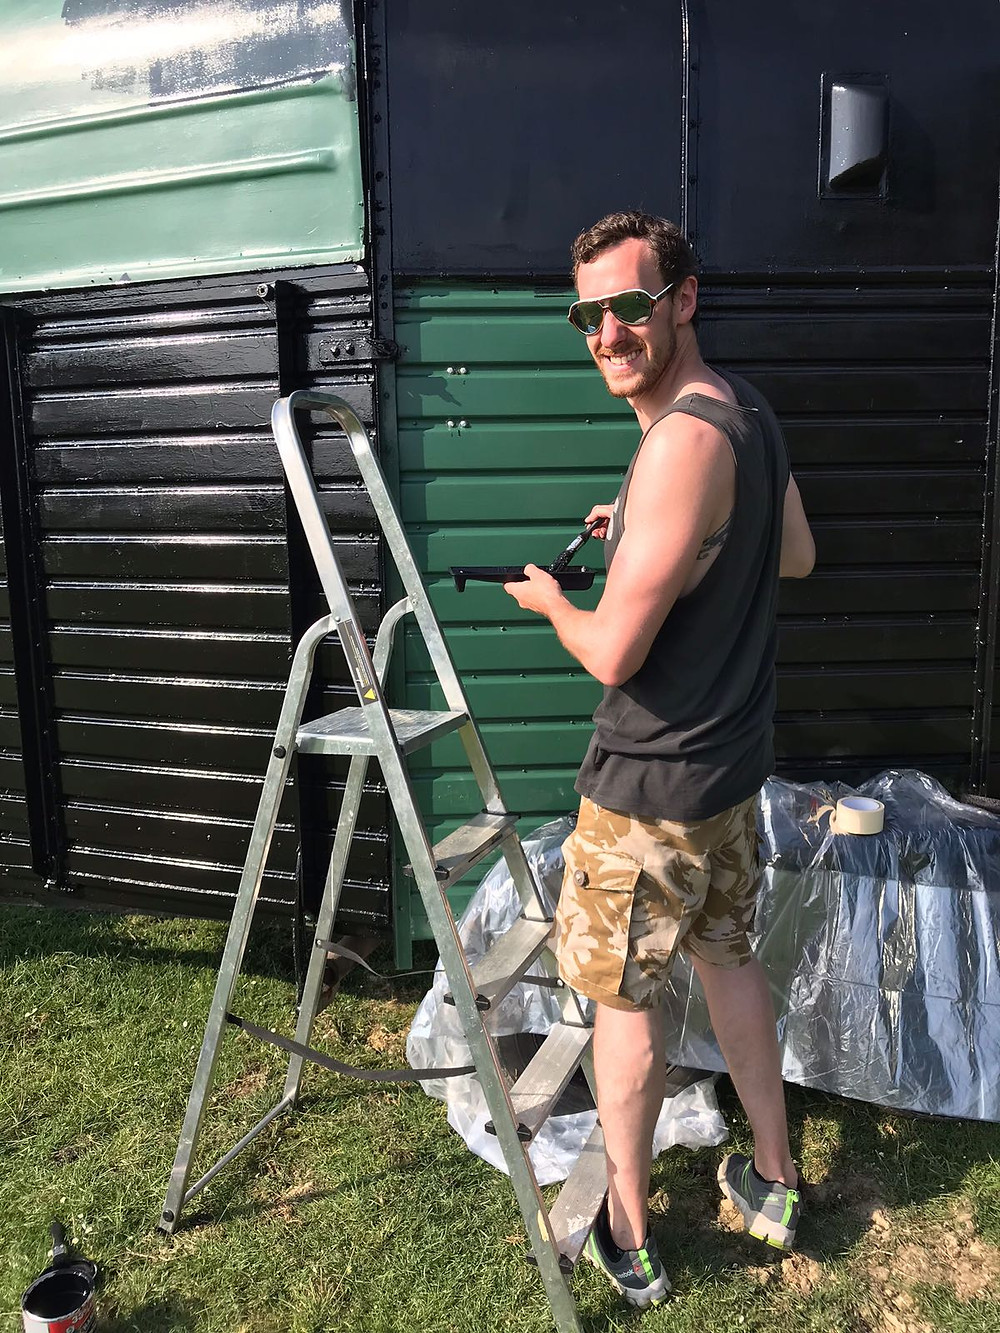 Sam painting the trailer